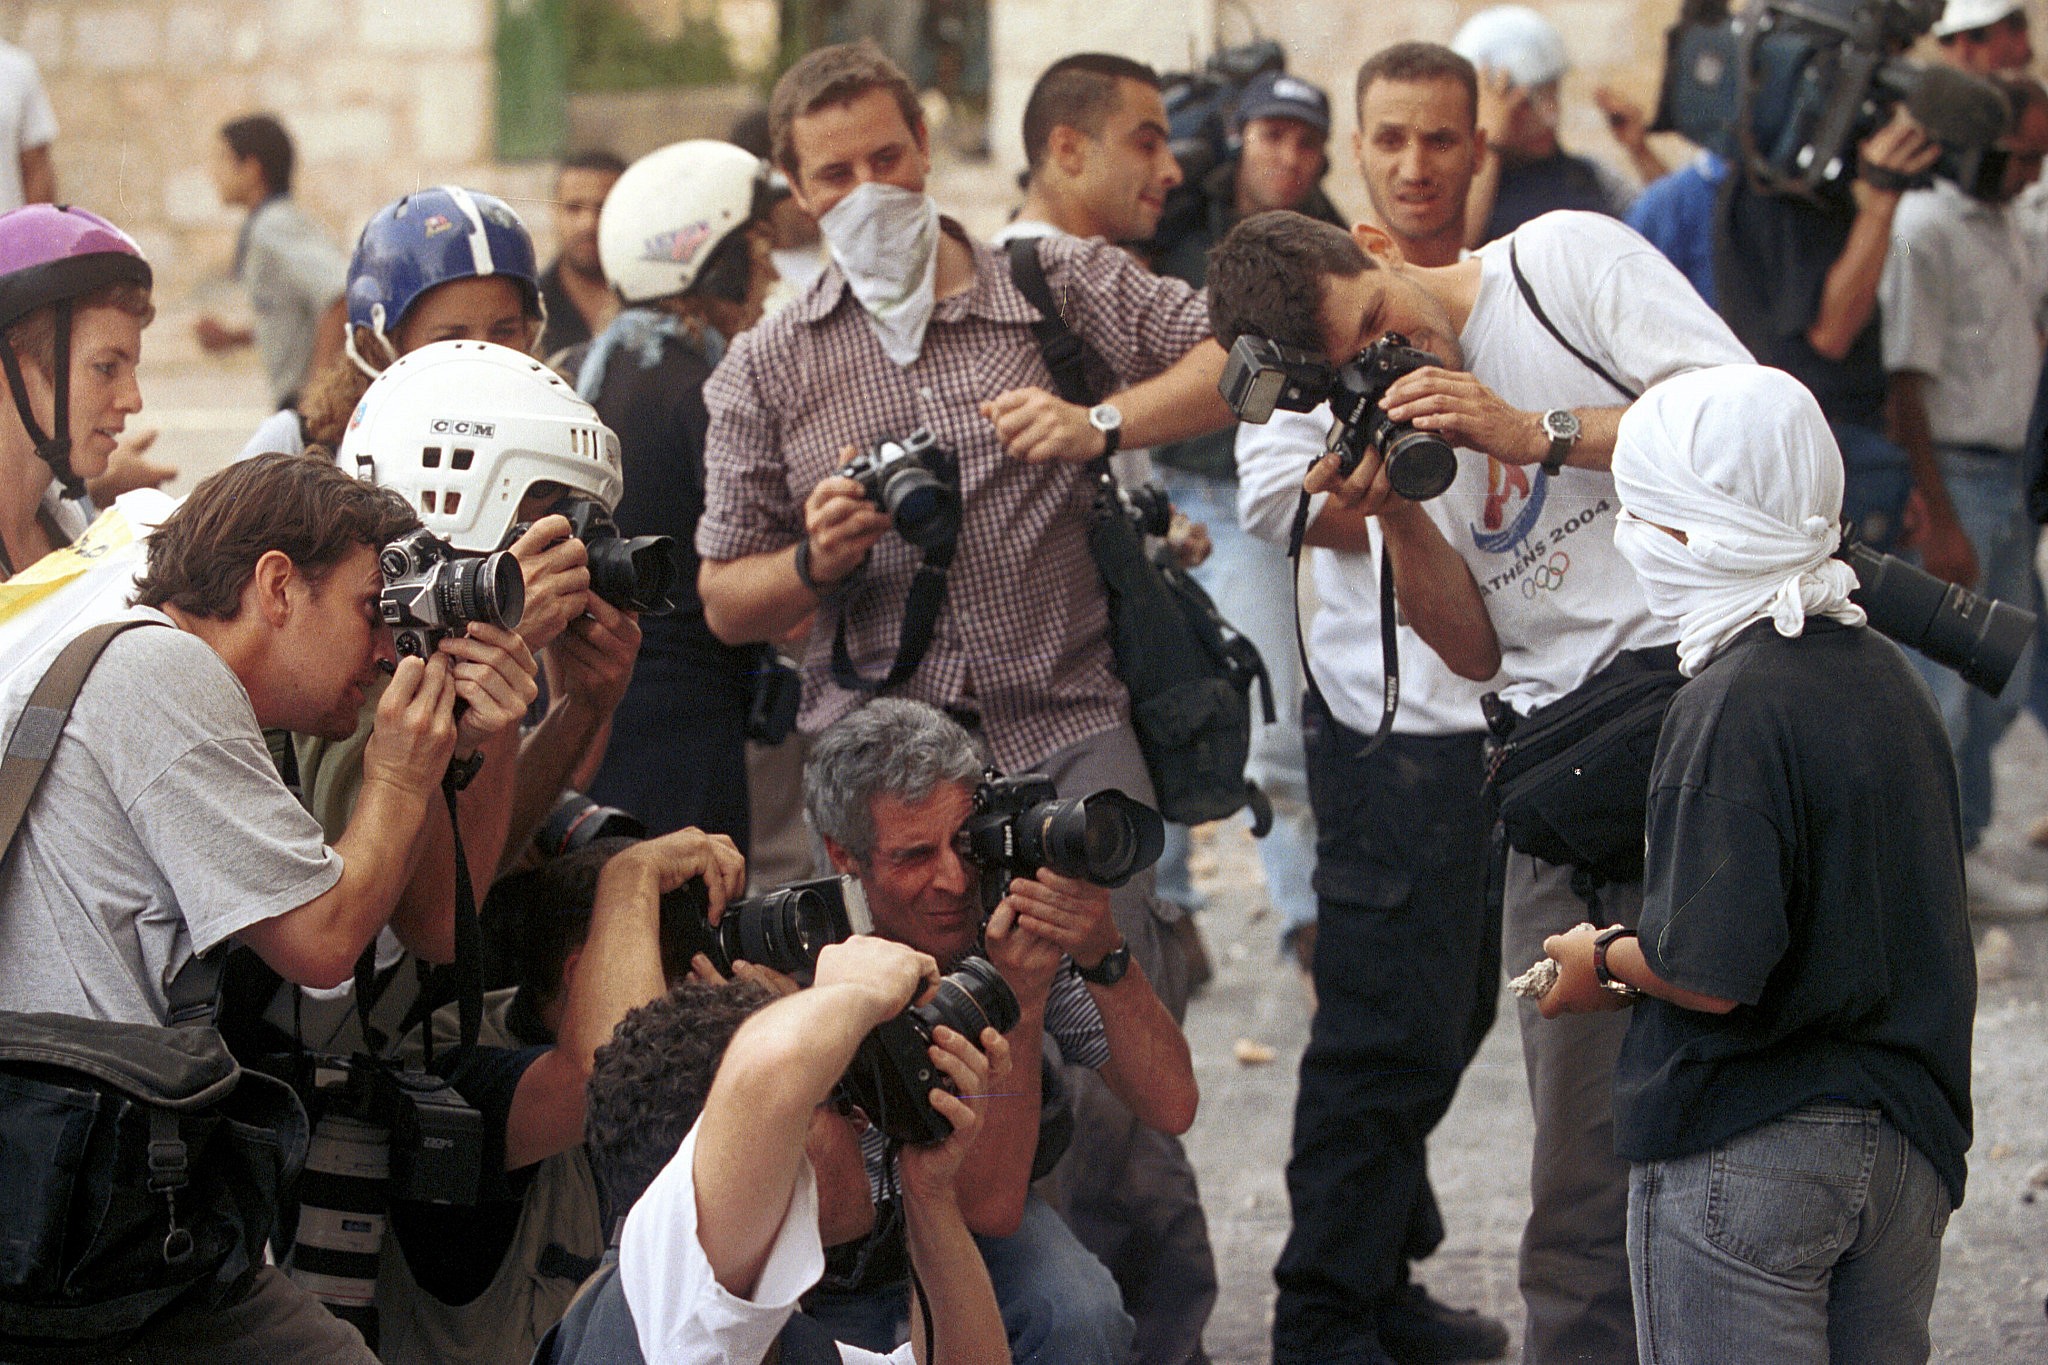 Journalists photograph a young Palestinian covering his face during clashes with Israeli police near Lions Gate in Jerusalem's Old City, October 06, 2000. Nati Shohat/Flash90